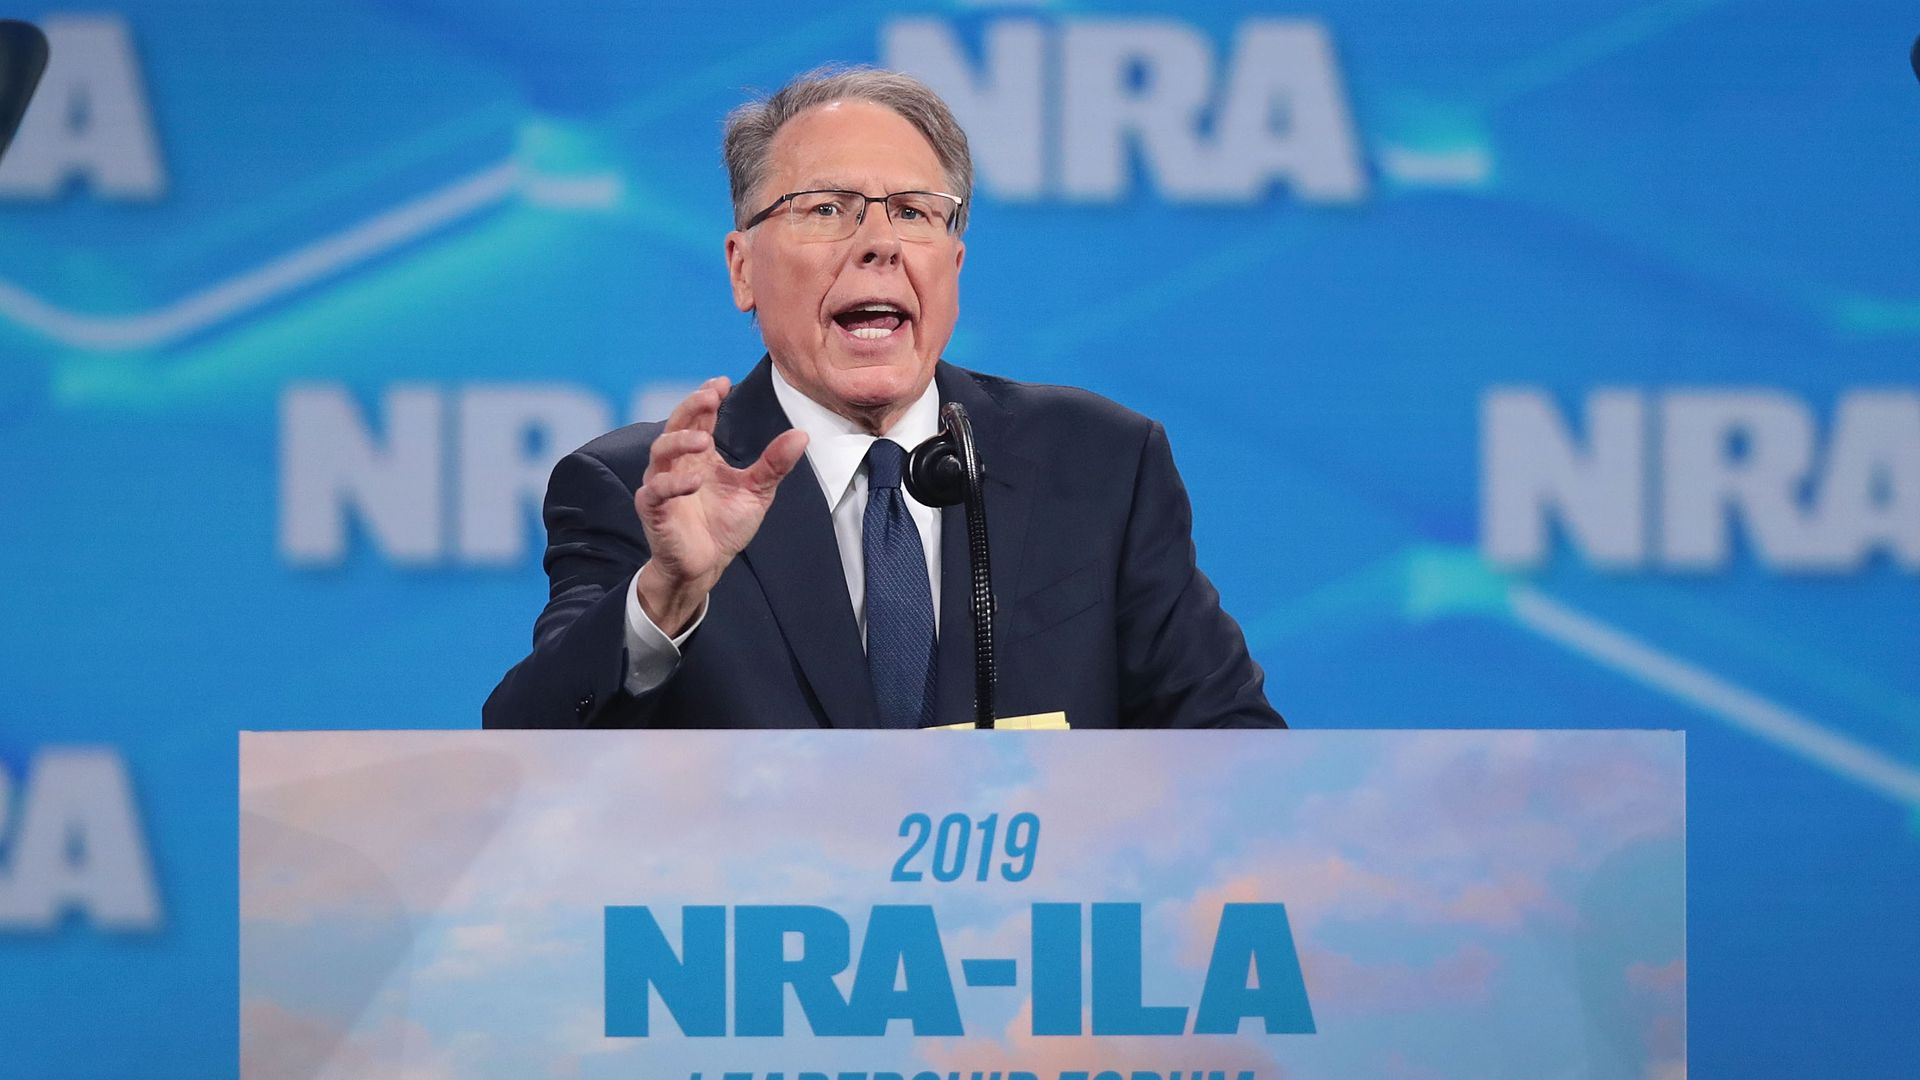 Wayne LaPierre, NRA vice president and CEO, speaks to guests at the NRA-ILA Leadership Forum at the 148th NRA Annual Meetings & Exhibits on April 26